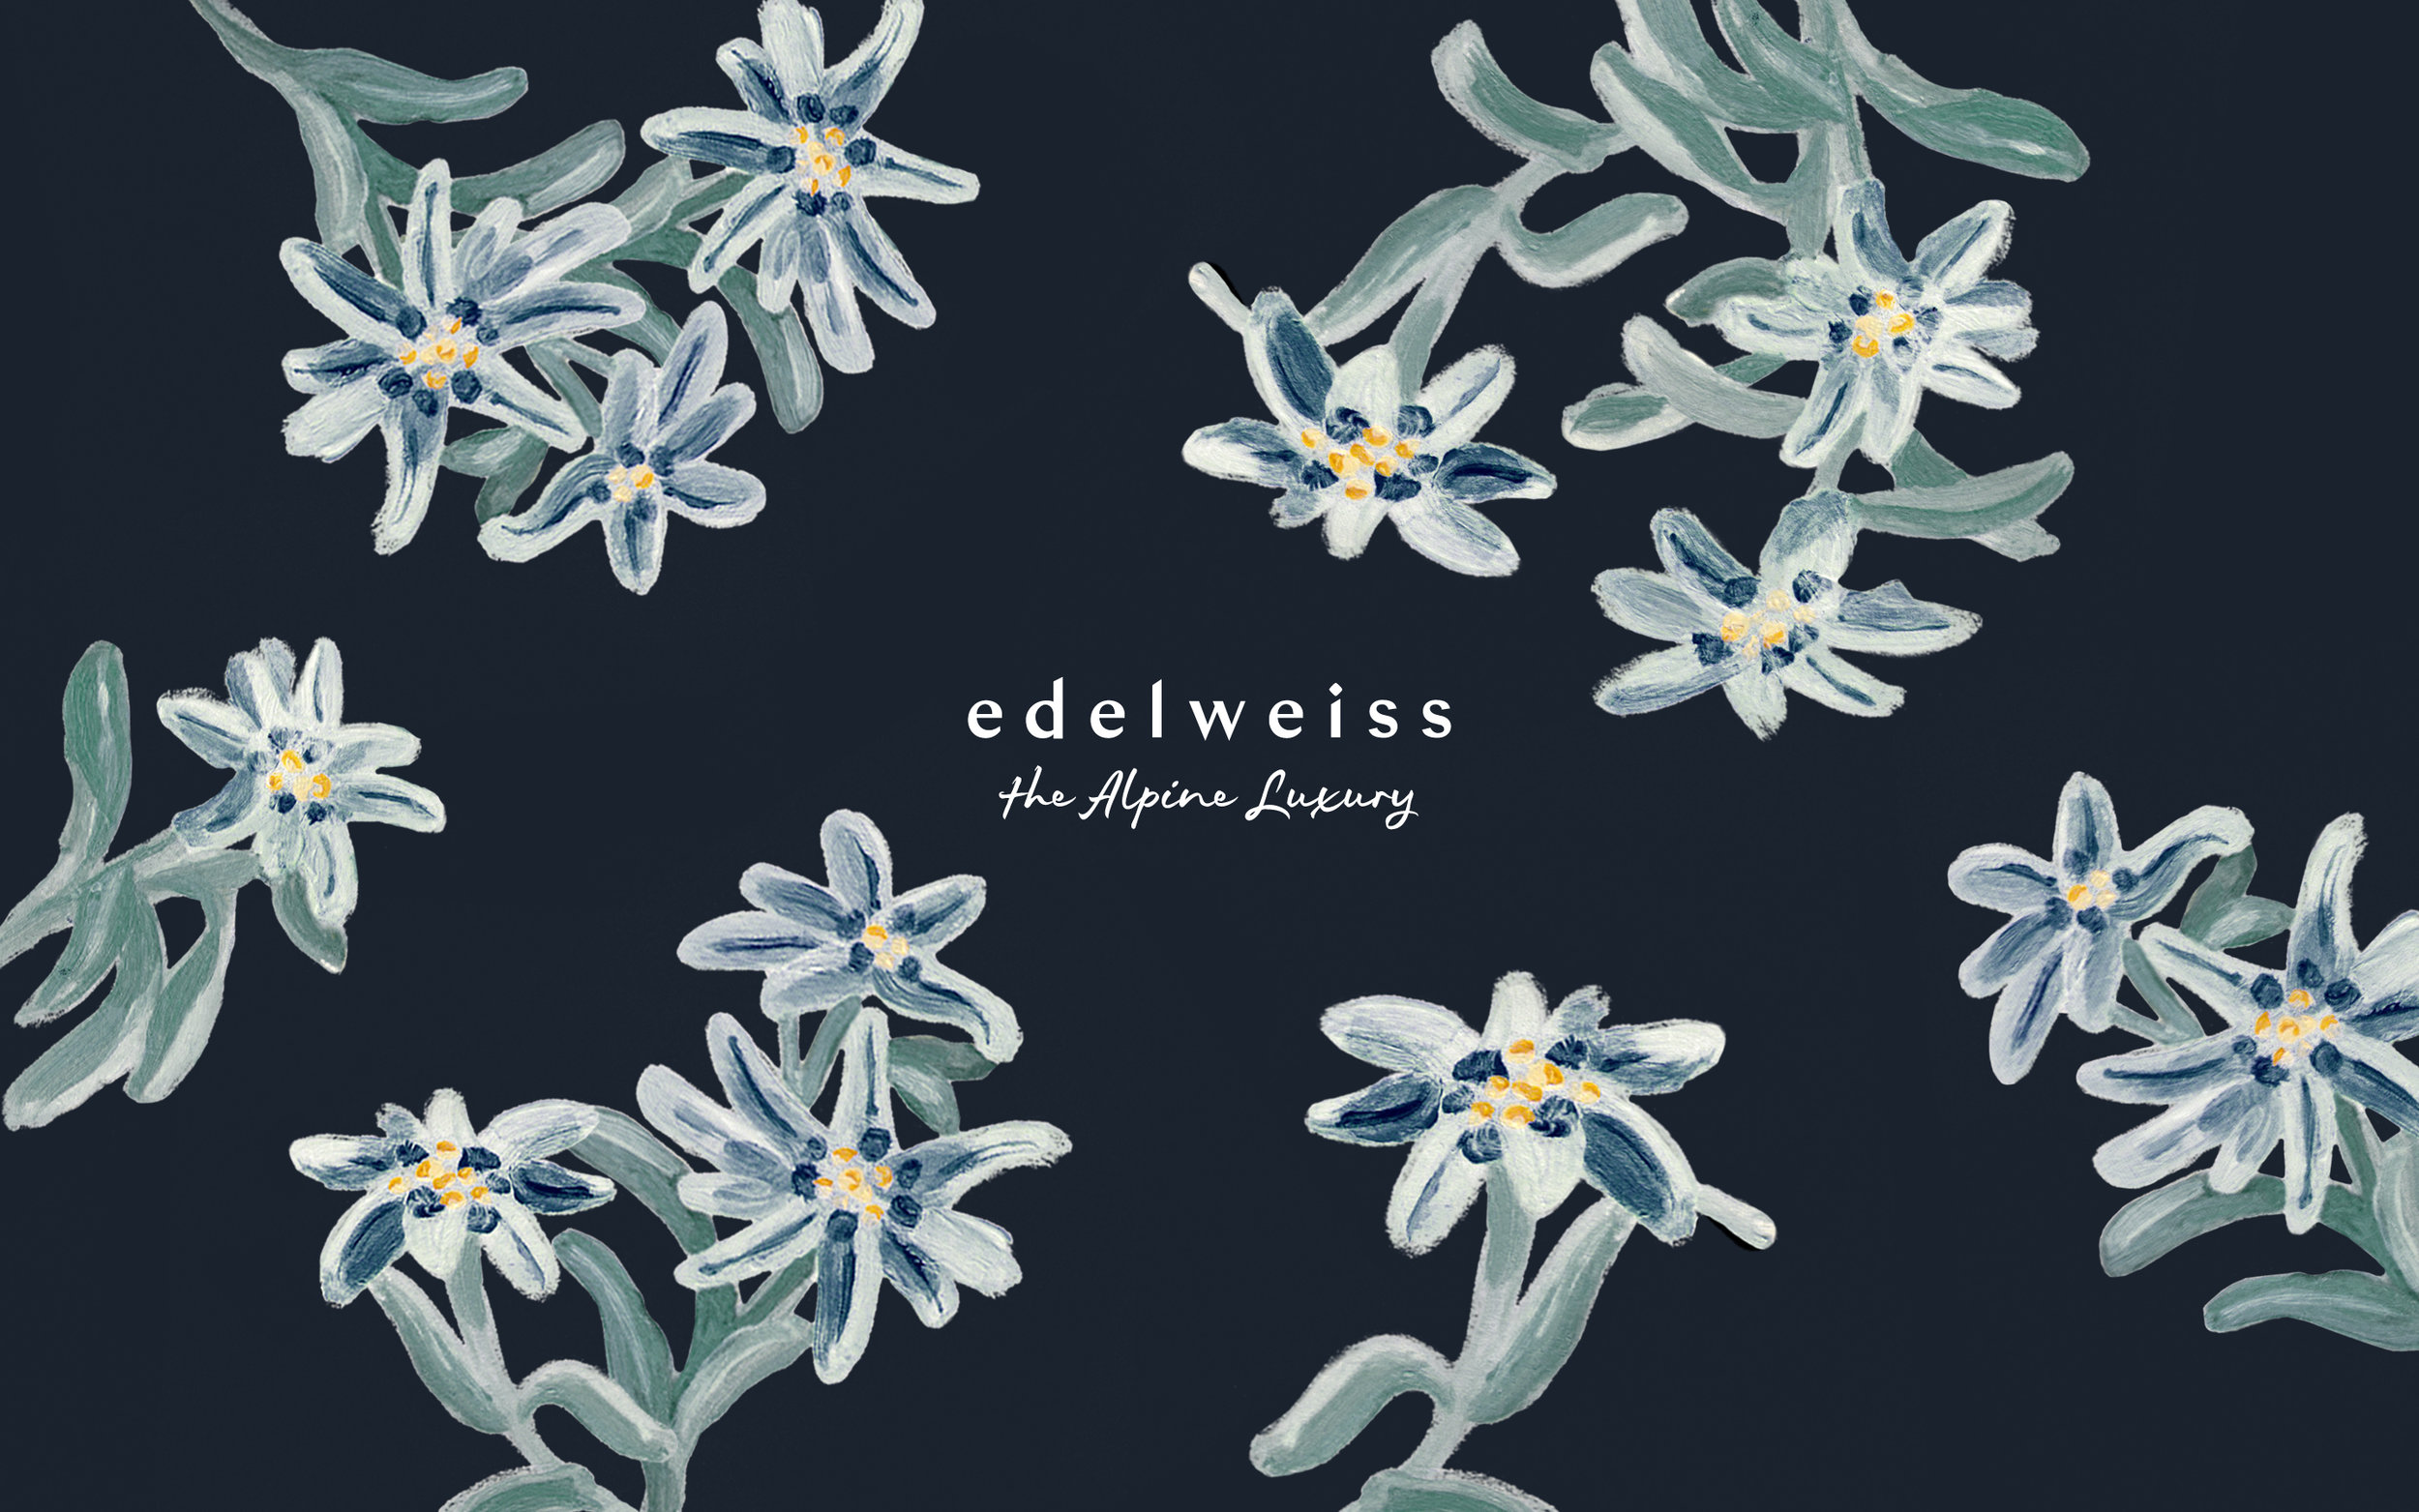 2018_10_15_edelweiss_wallpaper_desktop2880x1800_luxury.jpg